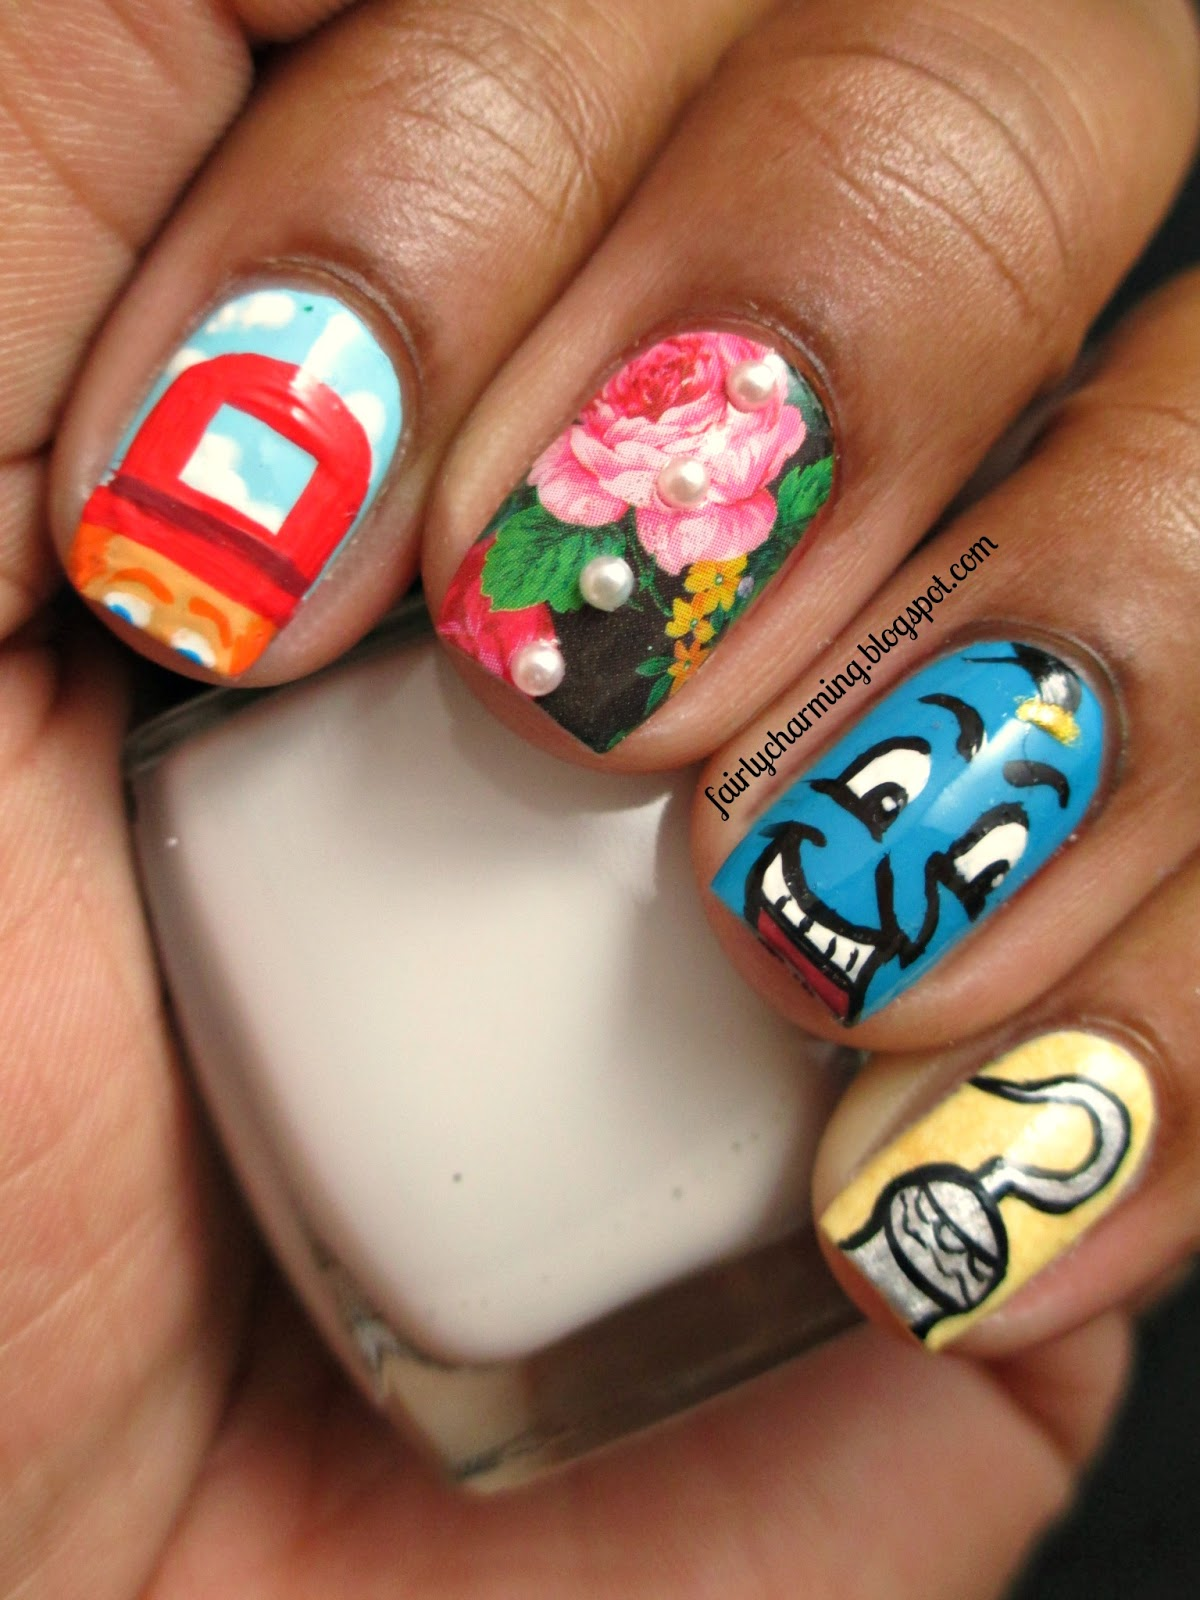 Robin Williams, tribut, nails, nail art, nail design, Toys, Mrs. Doubtfire, Aladdin, Hook